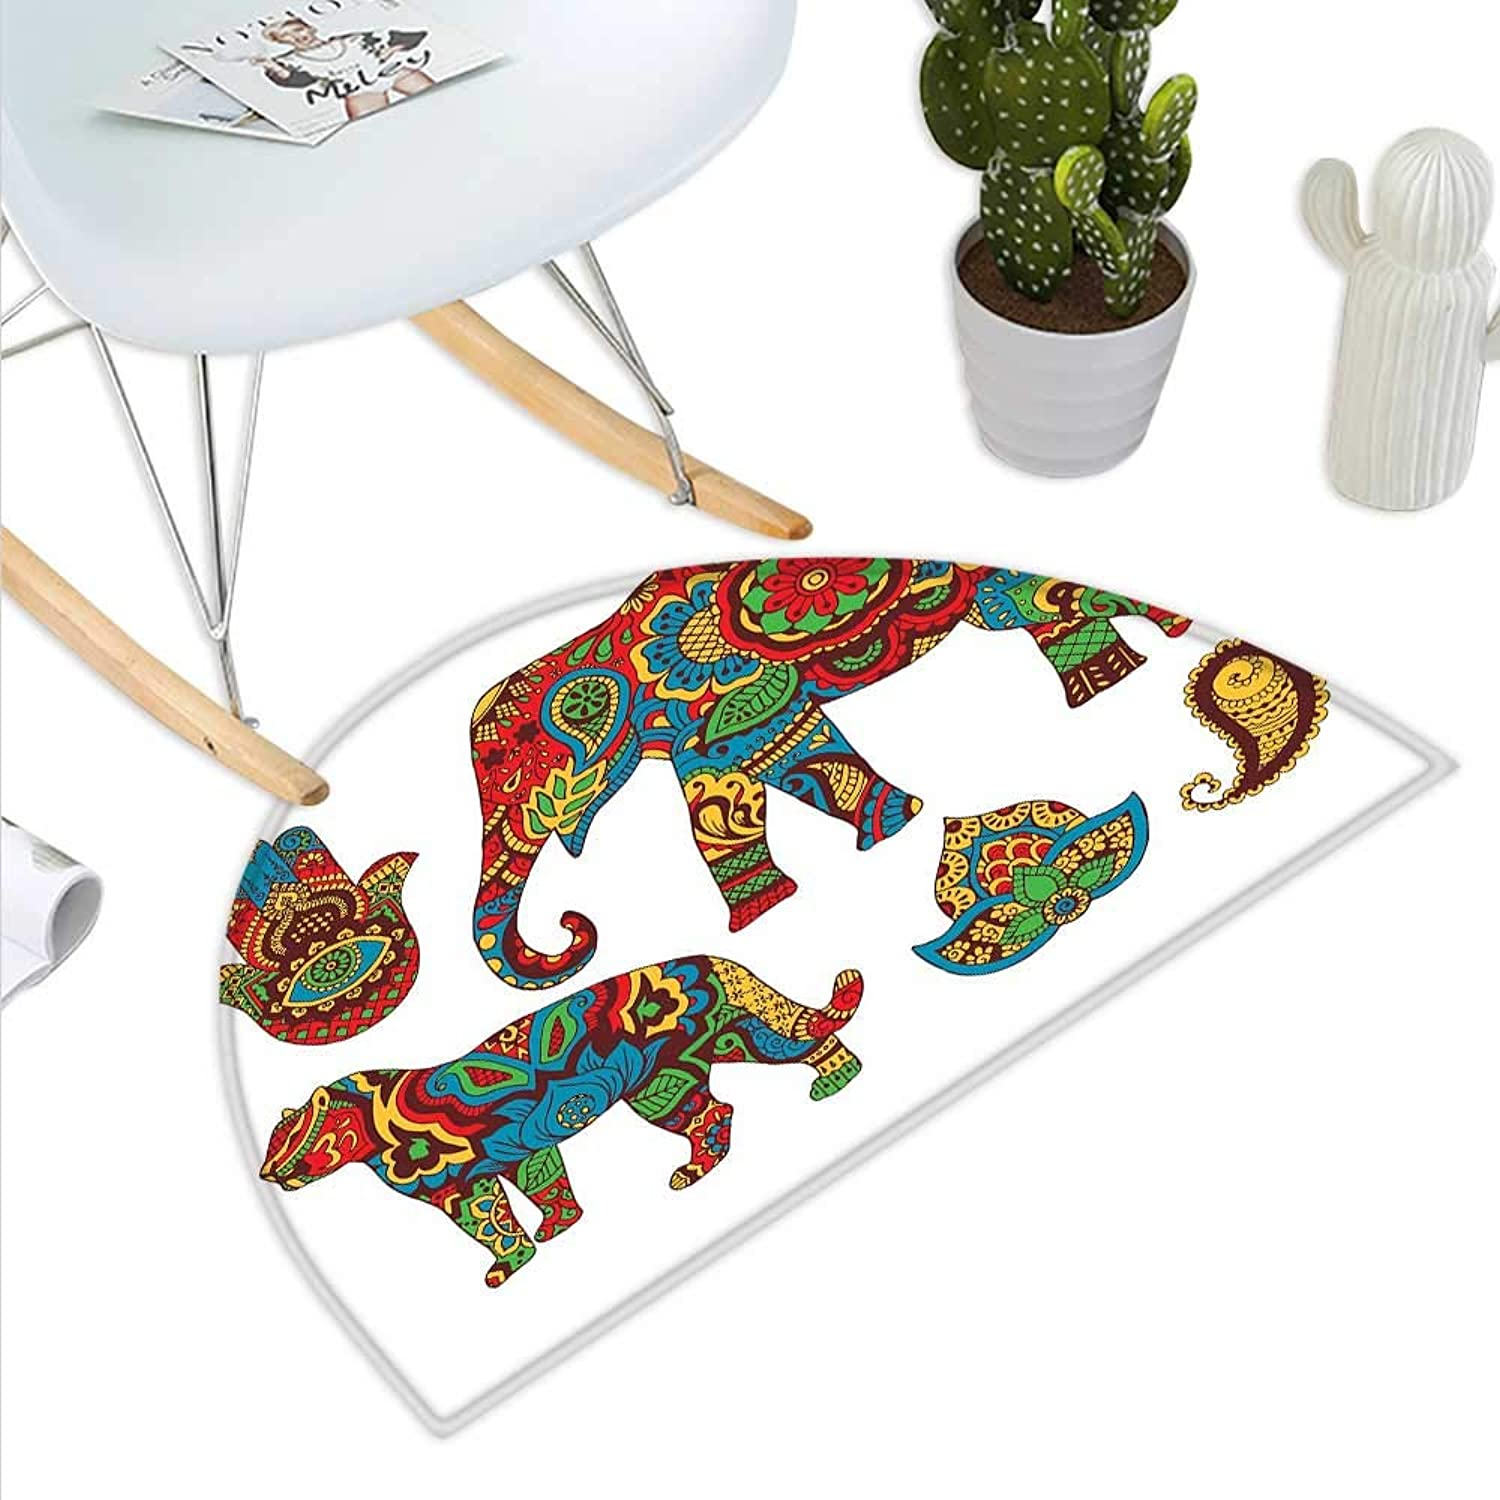 Hamsa Semicircle Doormat African Savannah Animals Paisley and Hamsa Hand Pattern with Orient Ornate Malaysian Halfmoon doormats H 39.3  xD 59  Multicolor